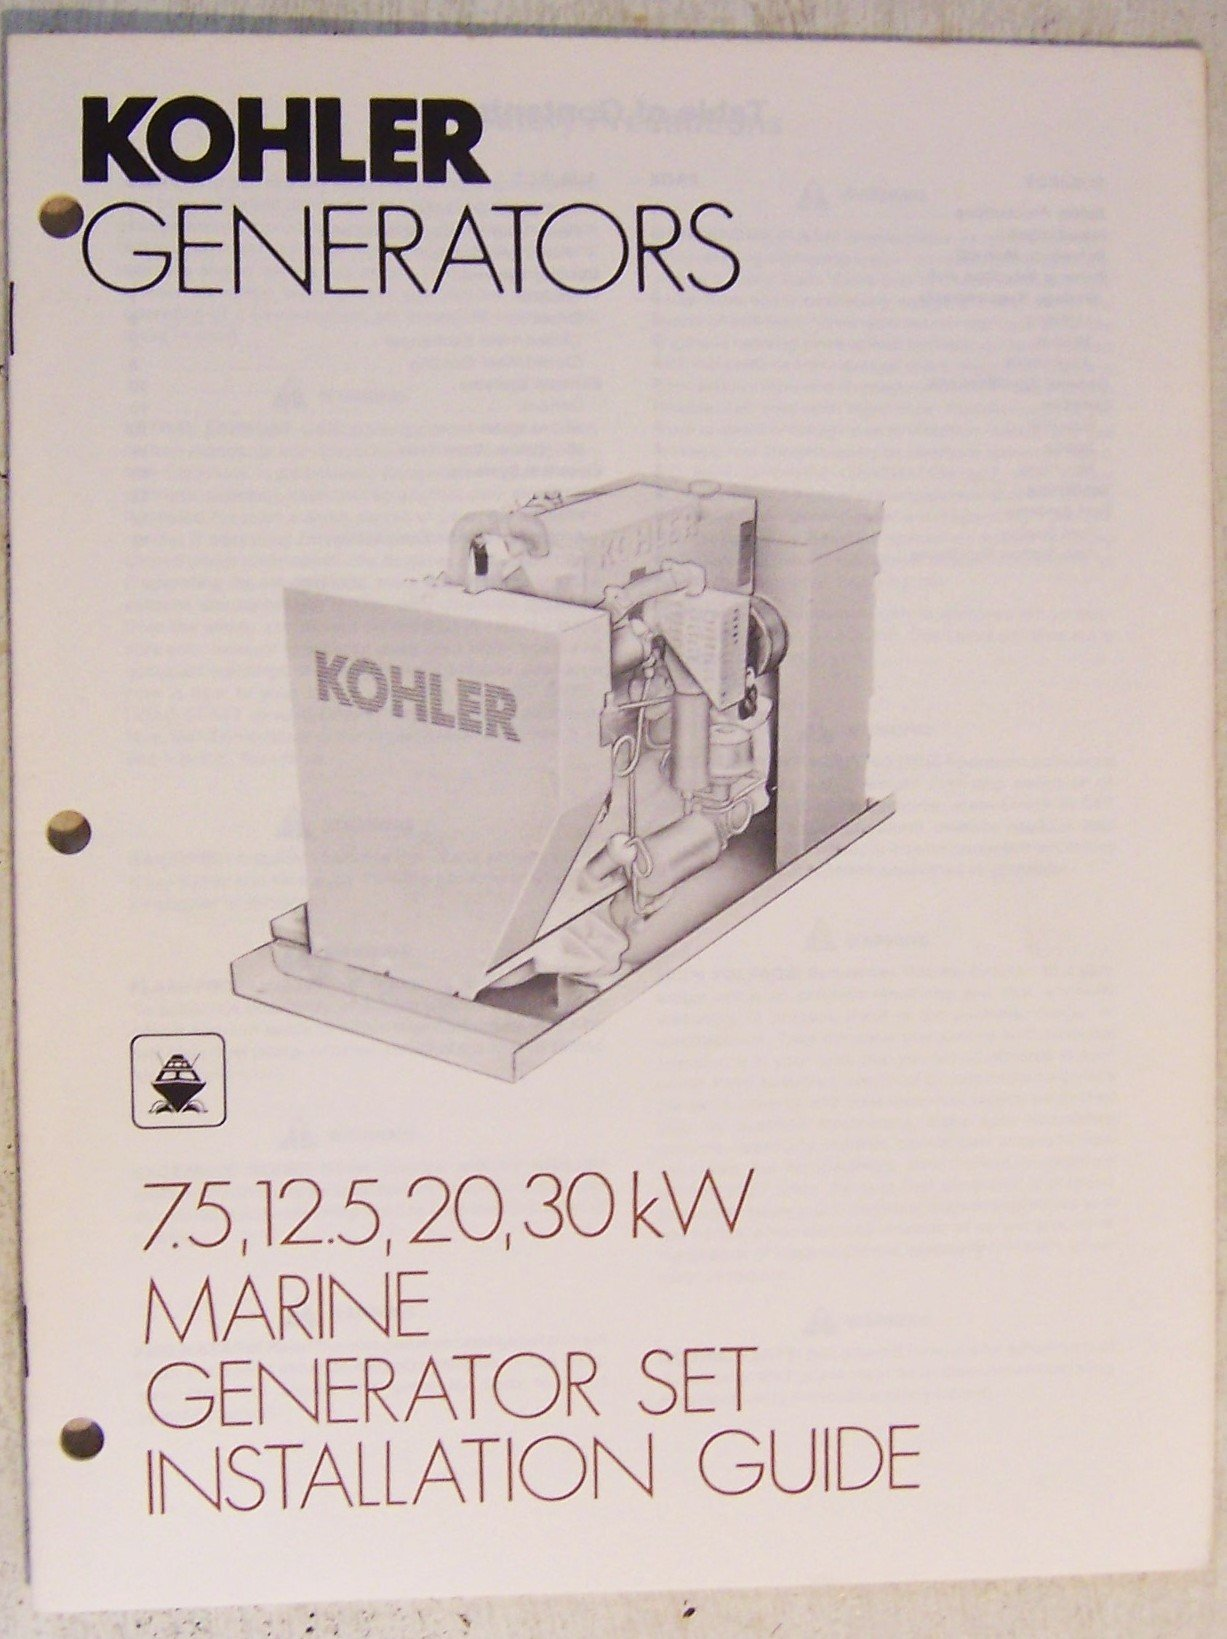 Kohler Generators Marine Generator Sets Installation Guide Kohler Co Amazon Com Books